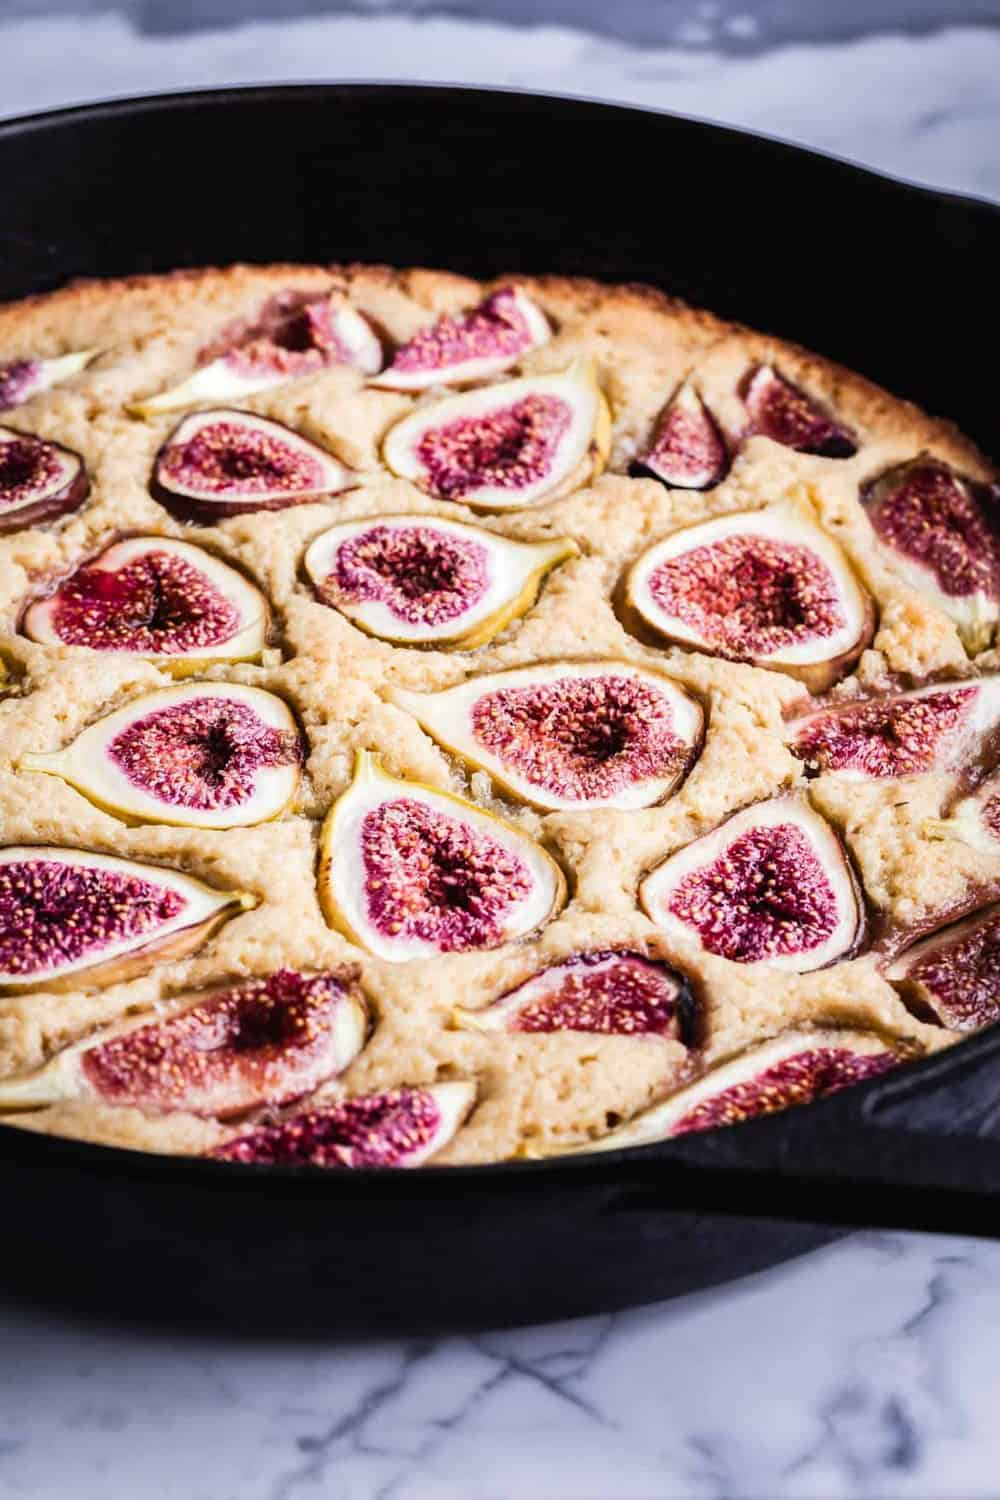 Fig skillet cake just out of the oven, side-angle shot.